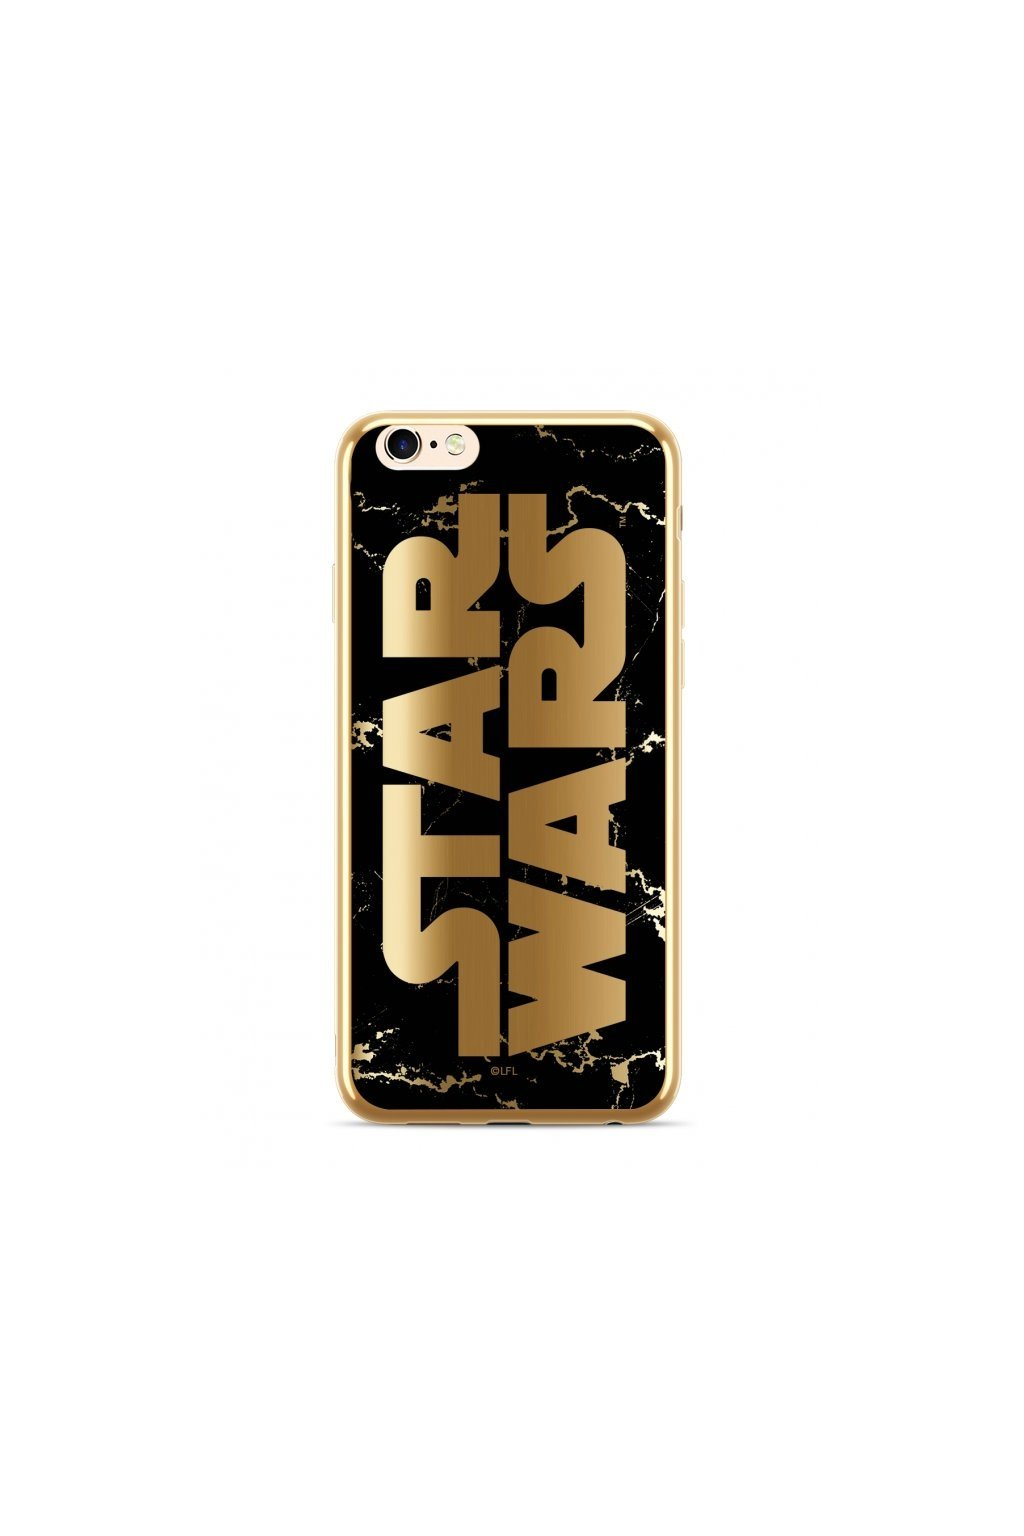 2369 star wars kryt pro iphone 6 7 8 plus